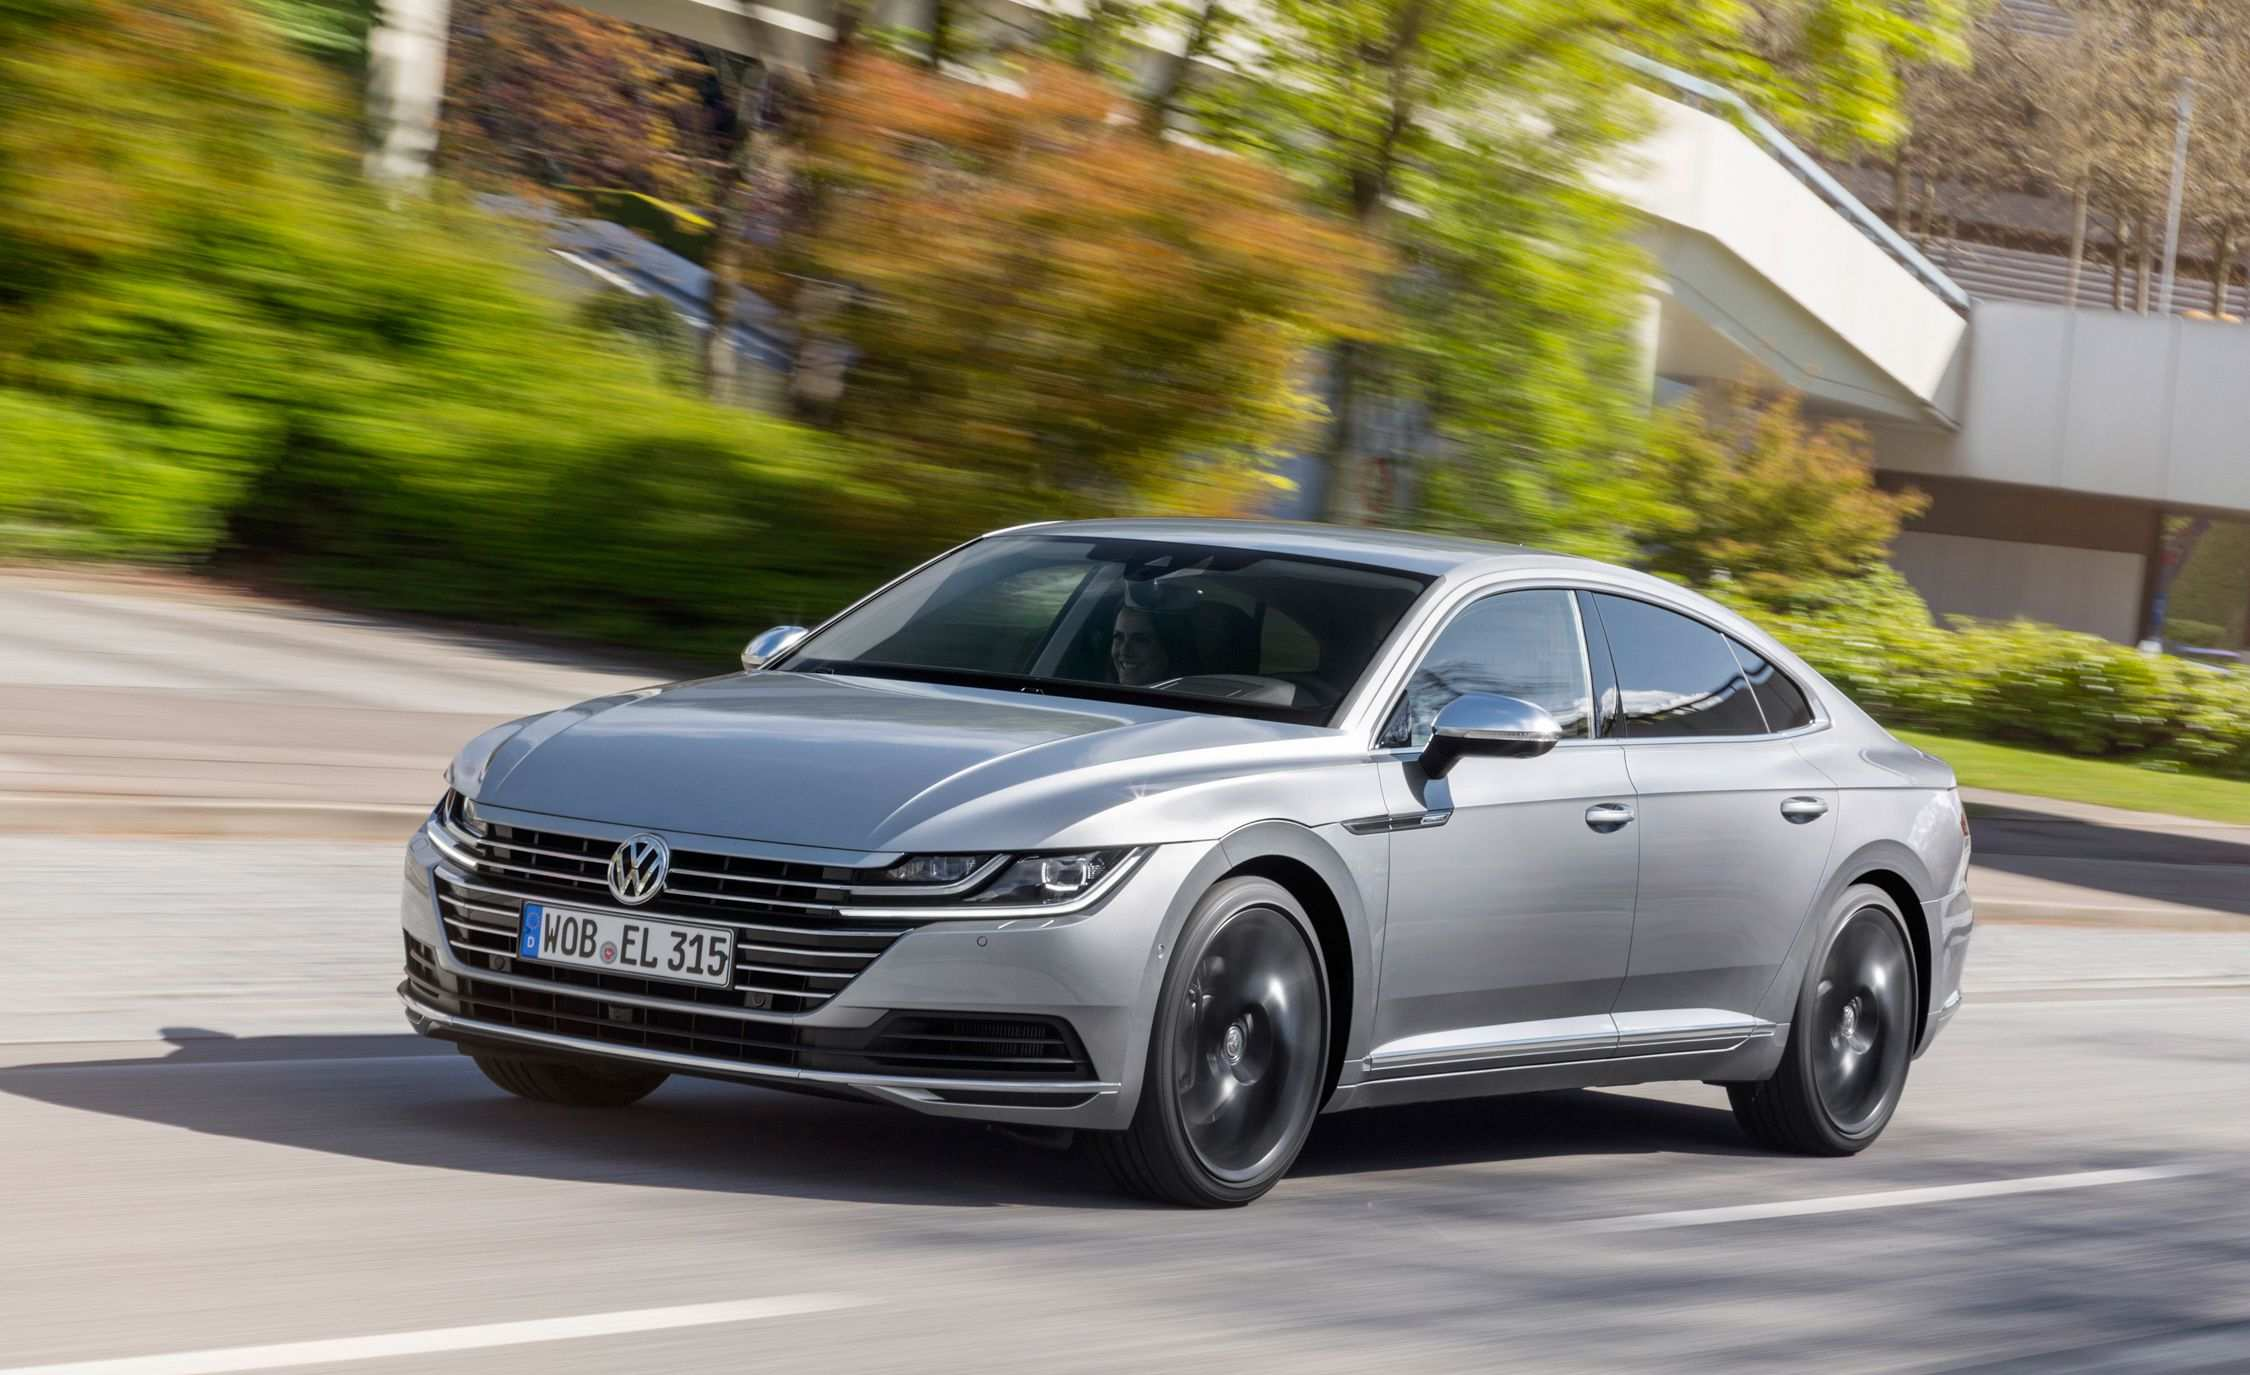 27 Concept of 2019 Vw Arteon Redesign for 2019 Vw Arteon